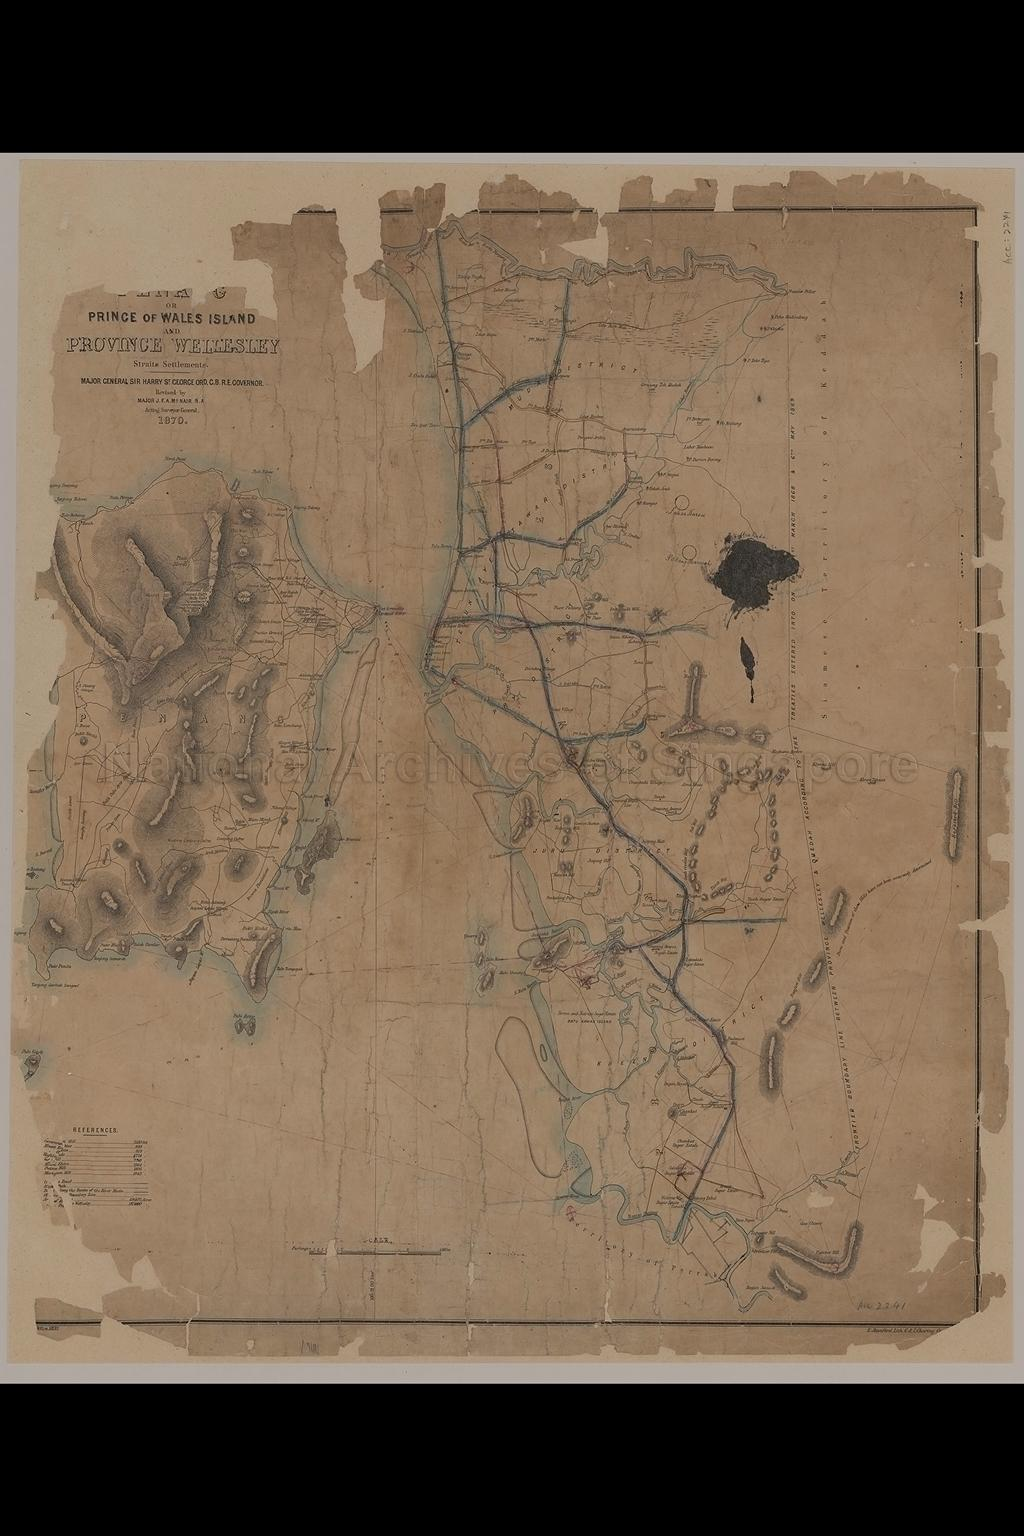 Map Of Prince Of Wales Island And Province Wellesley,  …